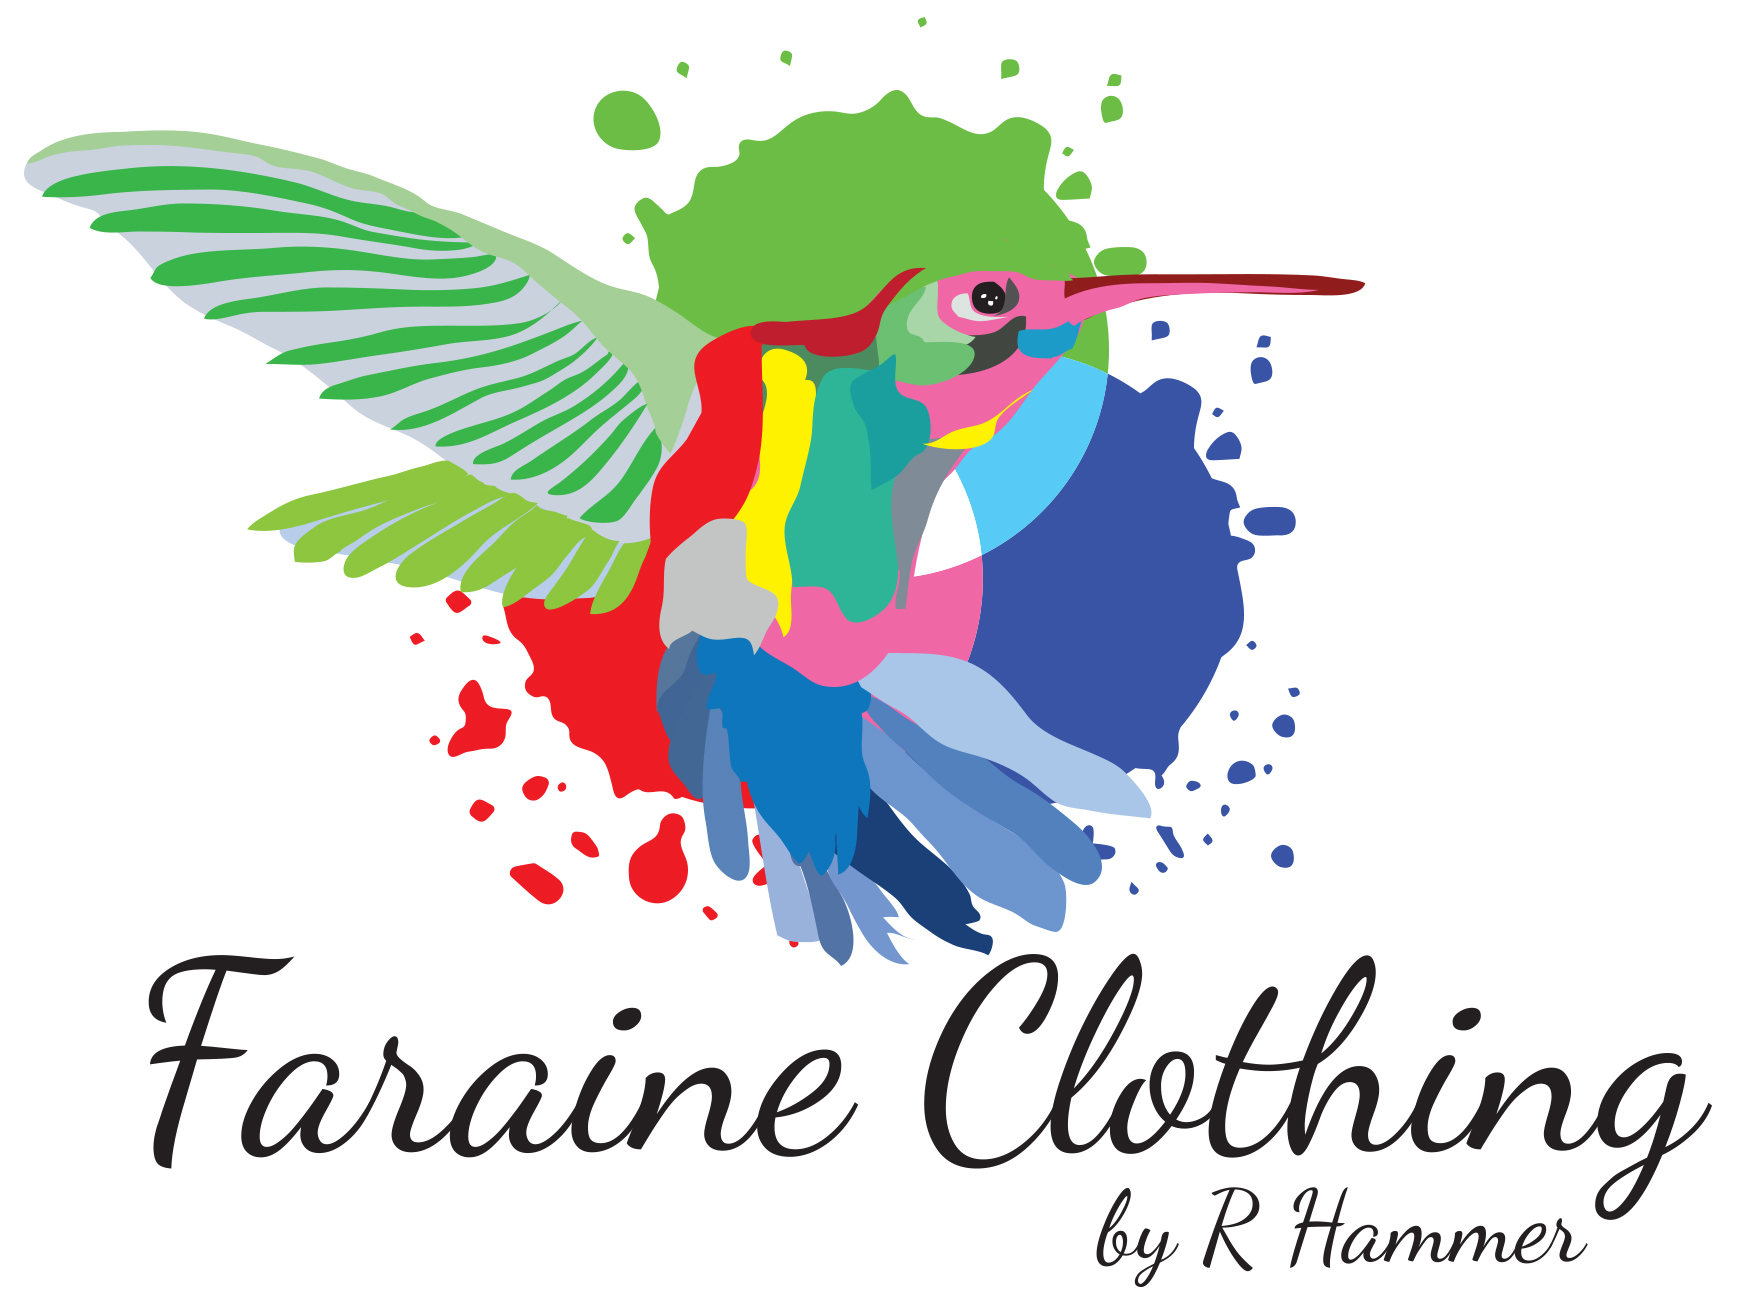 https://demo.pwsgallery.com/wp-content/uploads/2016/12/29651472_FaraineClothing.jpg